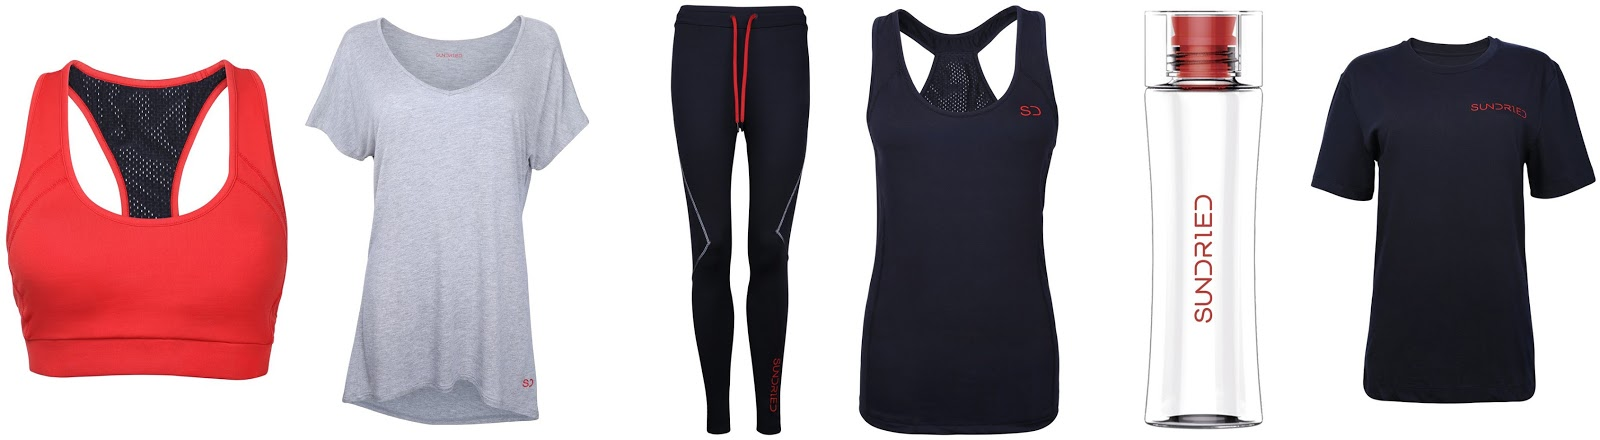 Sundried Activewear